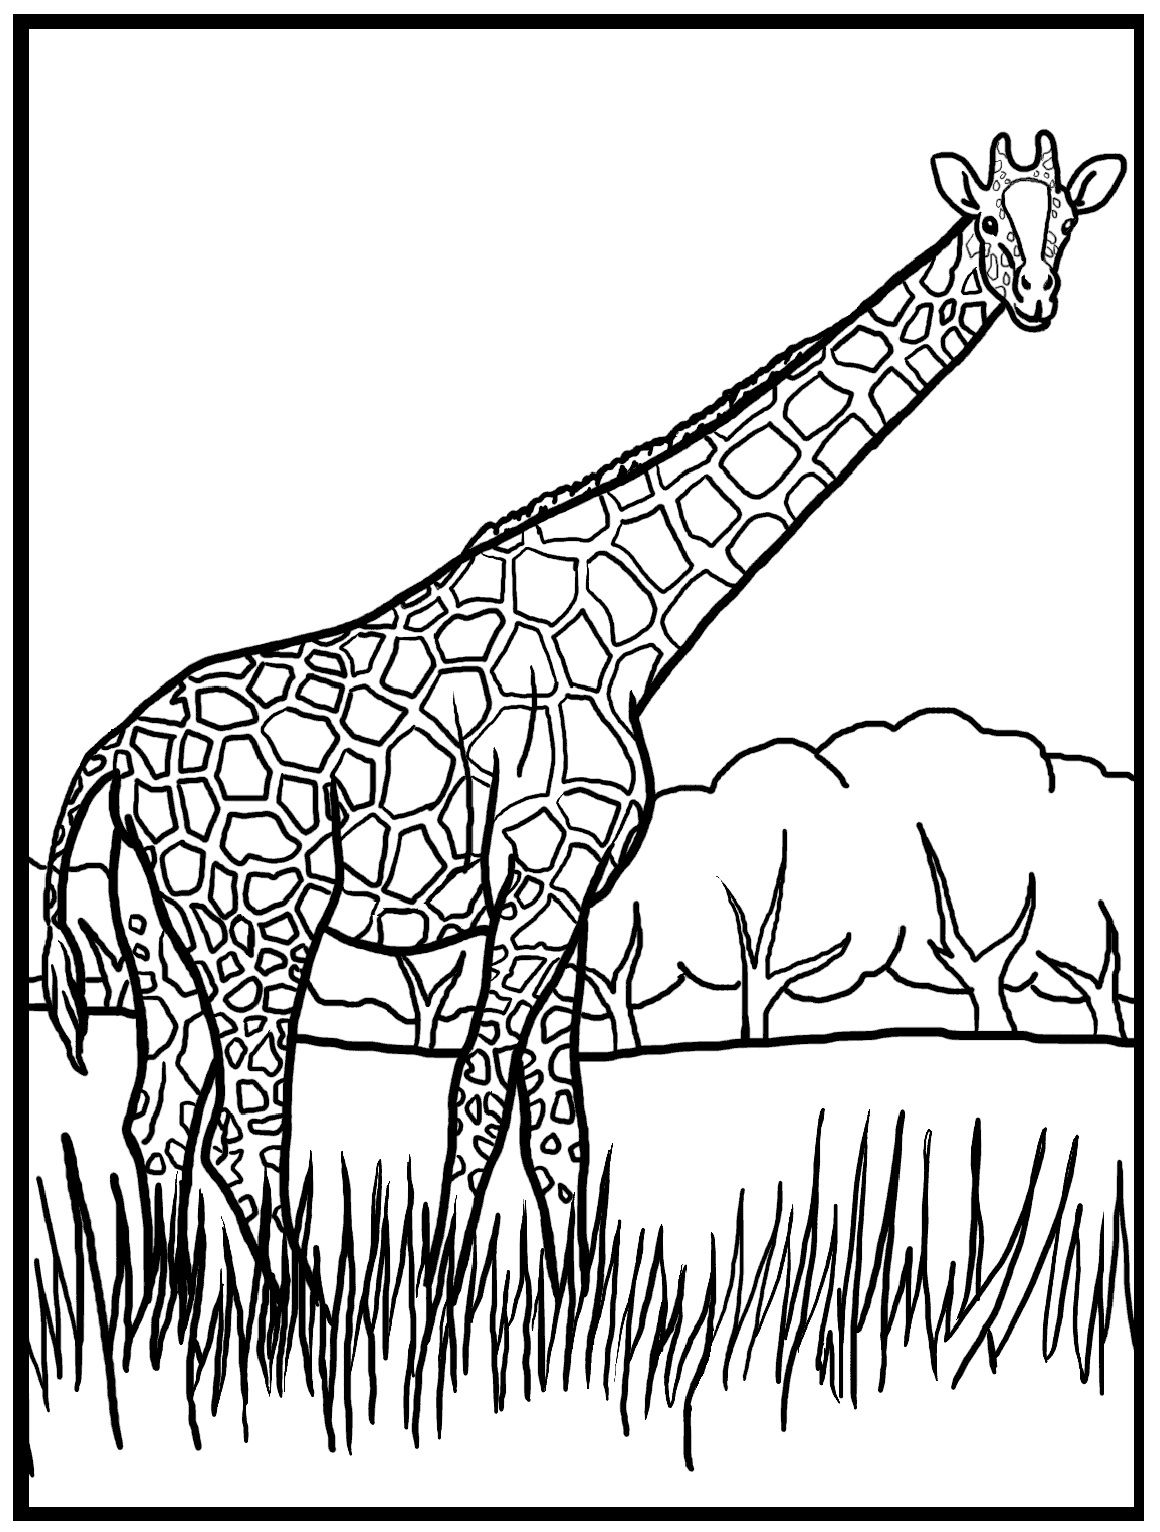 Giraffe Images Drawing at GetDrawingscom Free for personal use